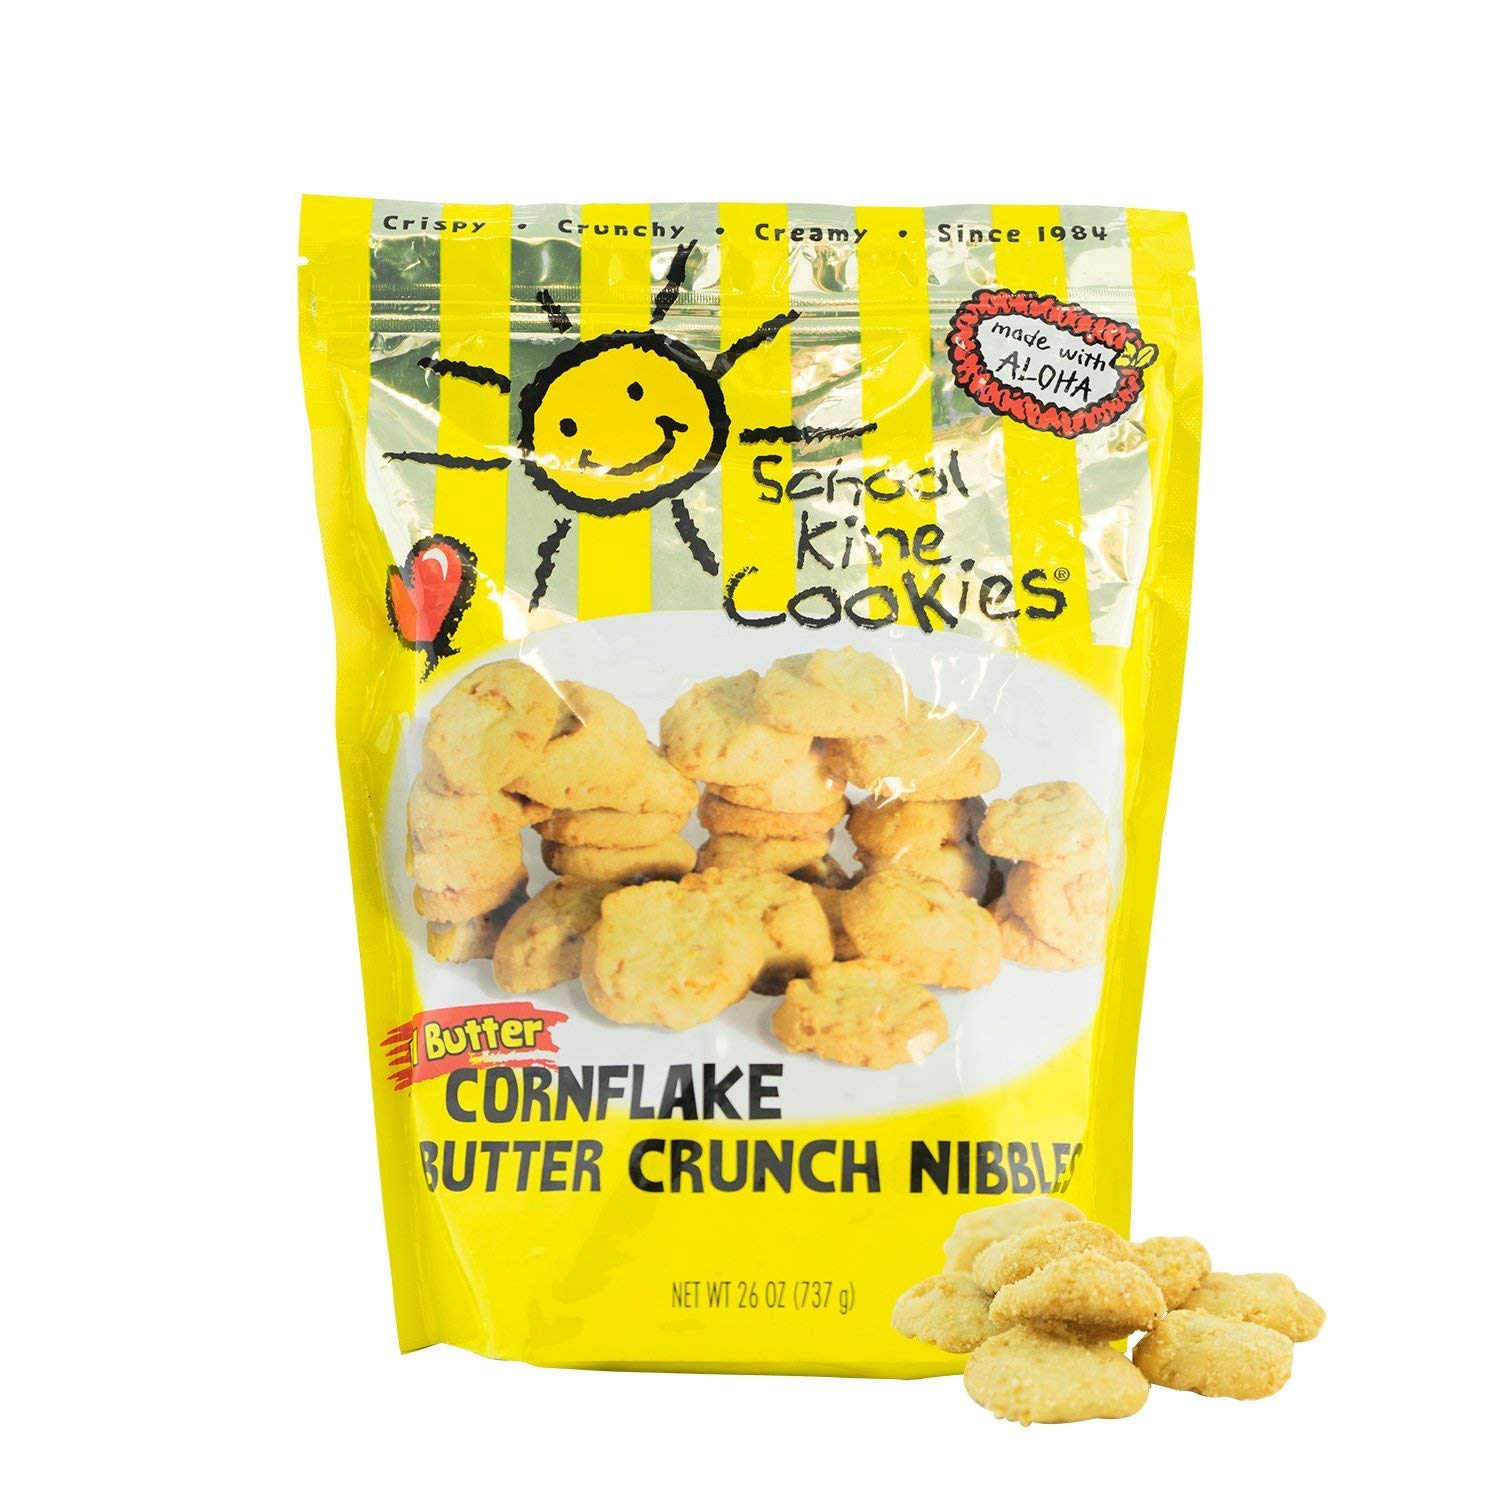 Hawaiian-style Butter Cookies, Bite-sized Cornflake Butter Crunch with Homemade Taste, Small Snacks For Kids and Adults, (26 oz) - School Kine Cookies